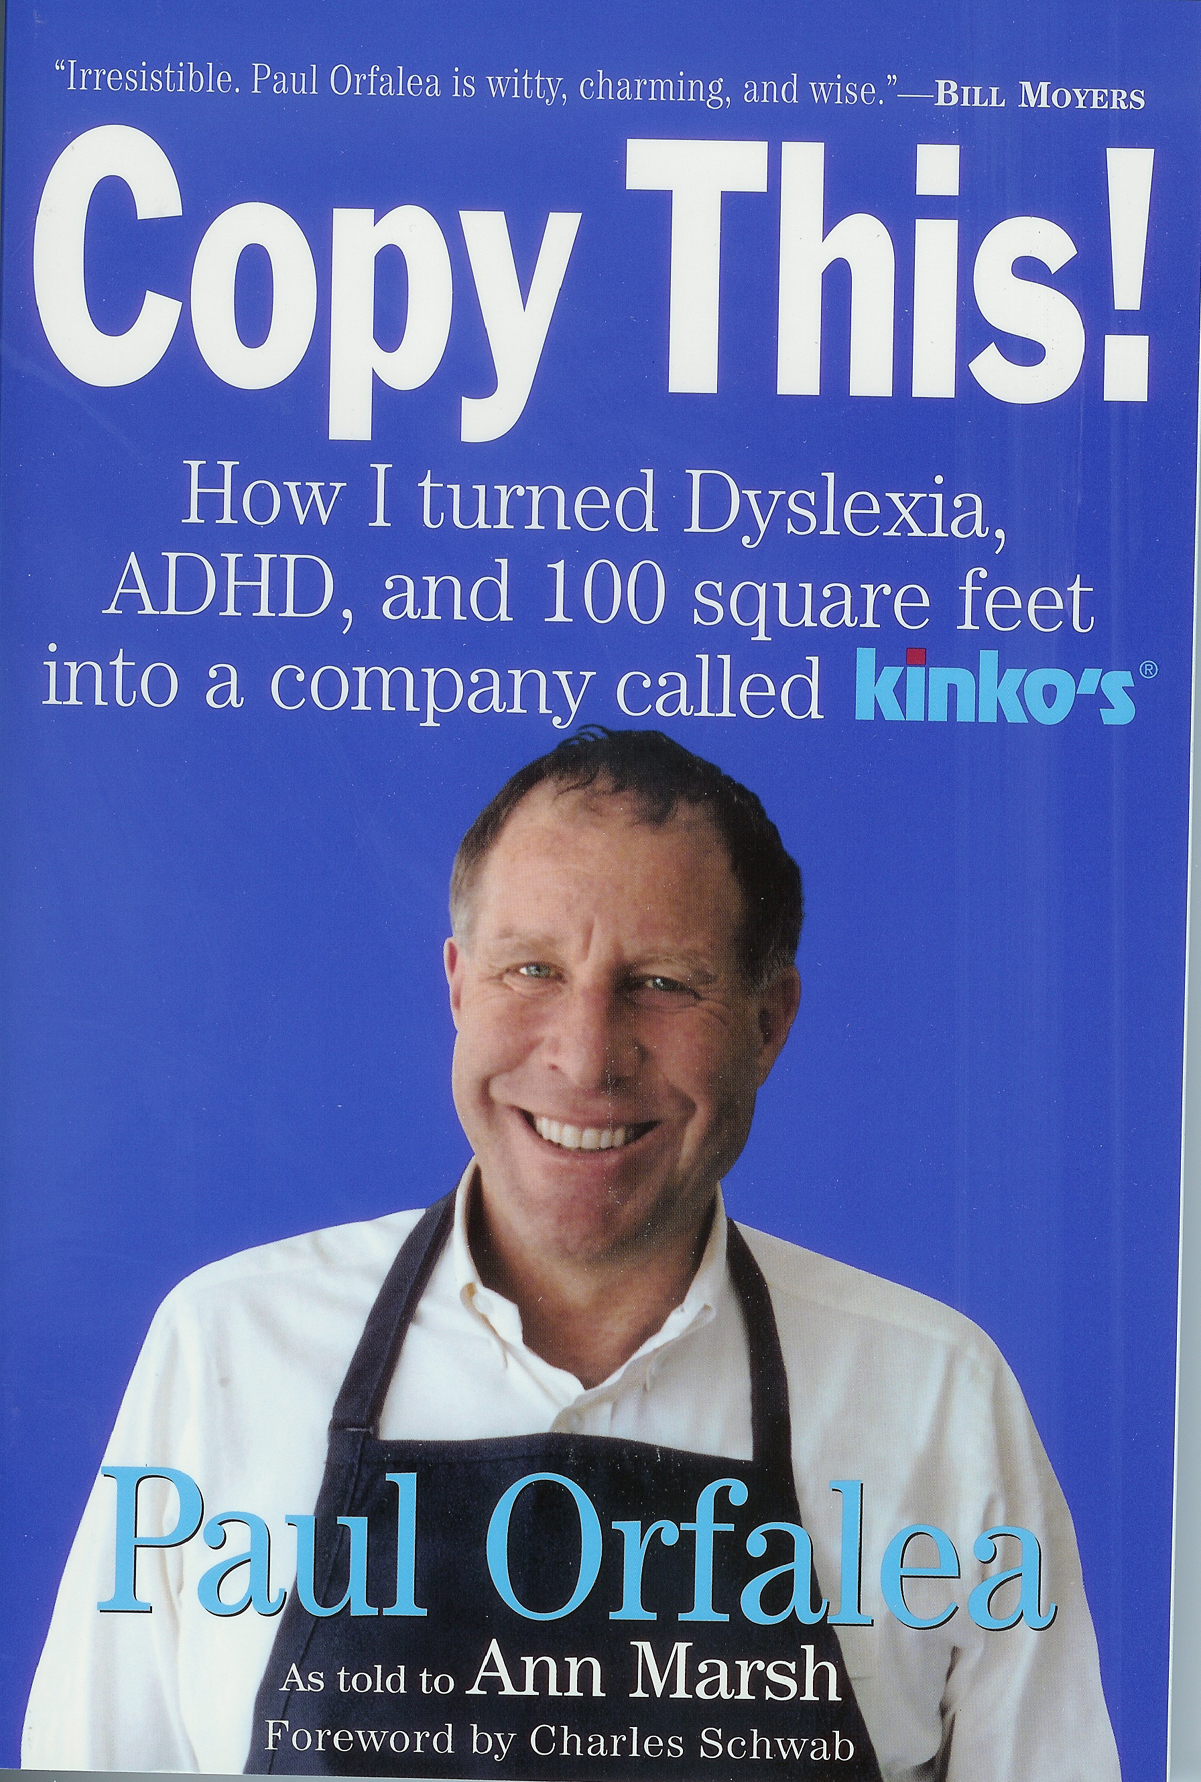 Copy This! How I turned Dyslexia, ADHD, and 100 square feet into a company called Kinko's